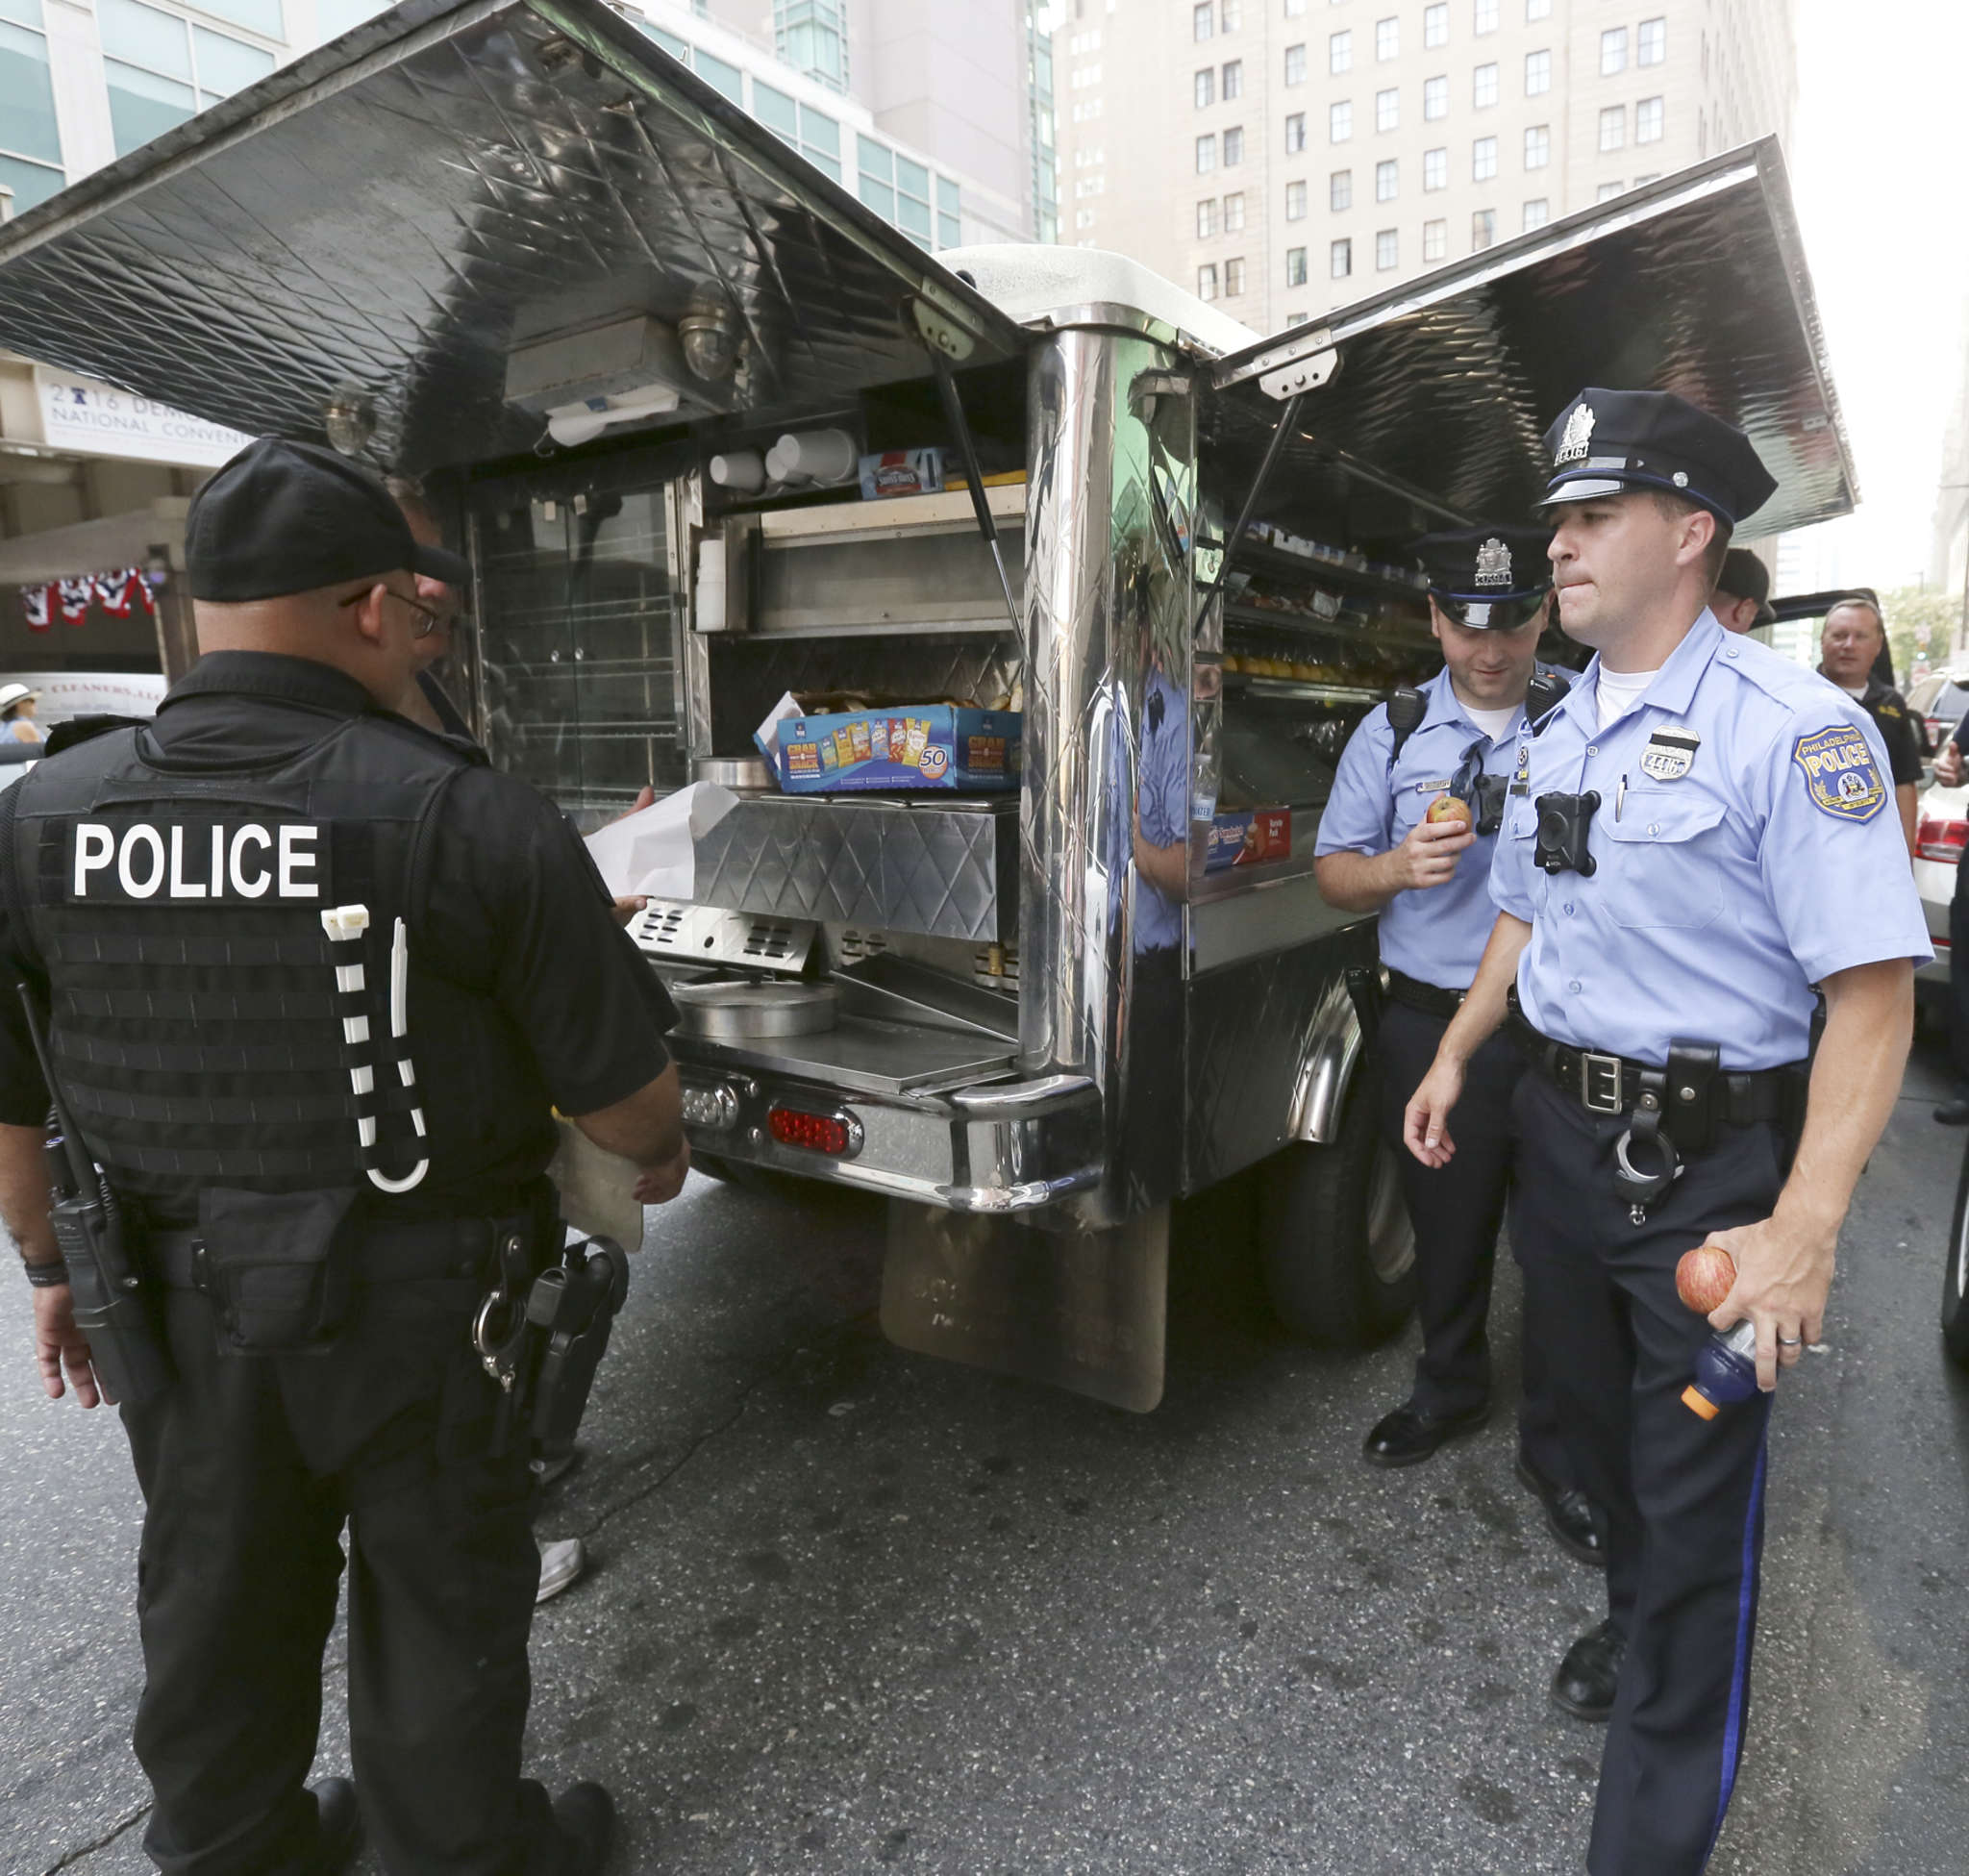 Officers working the DNC were fed and hydrated during the heat wave.